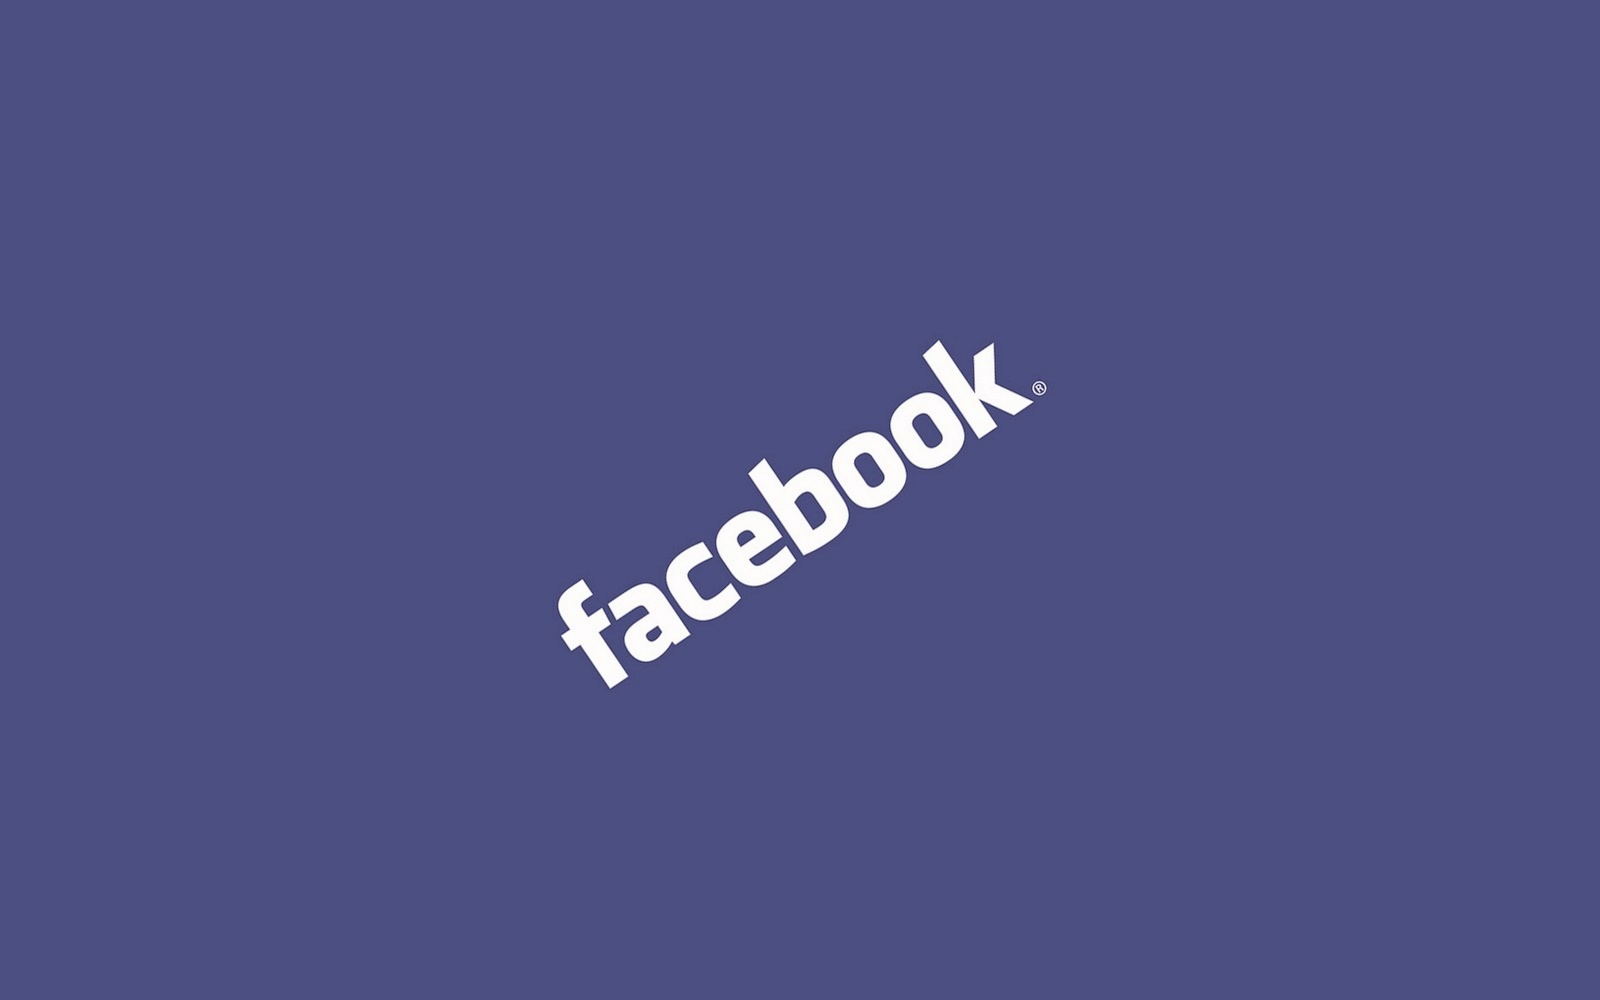 facebook simple and sweet wallpaper wallpapers free